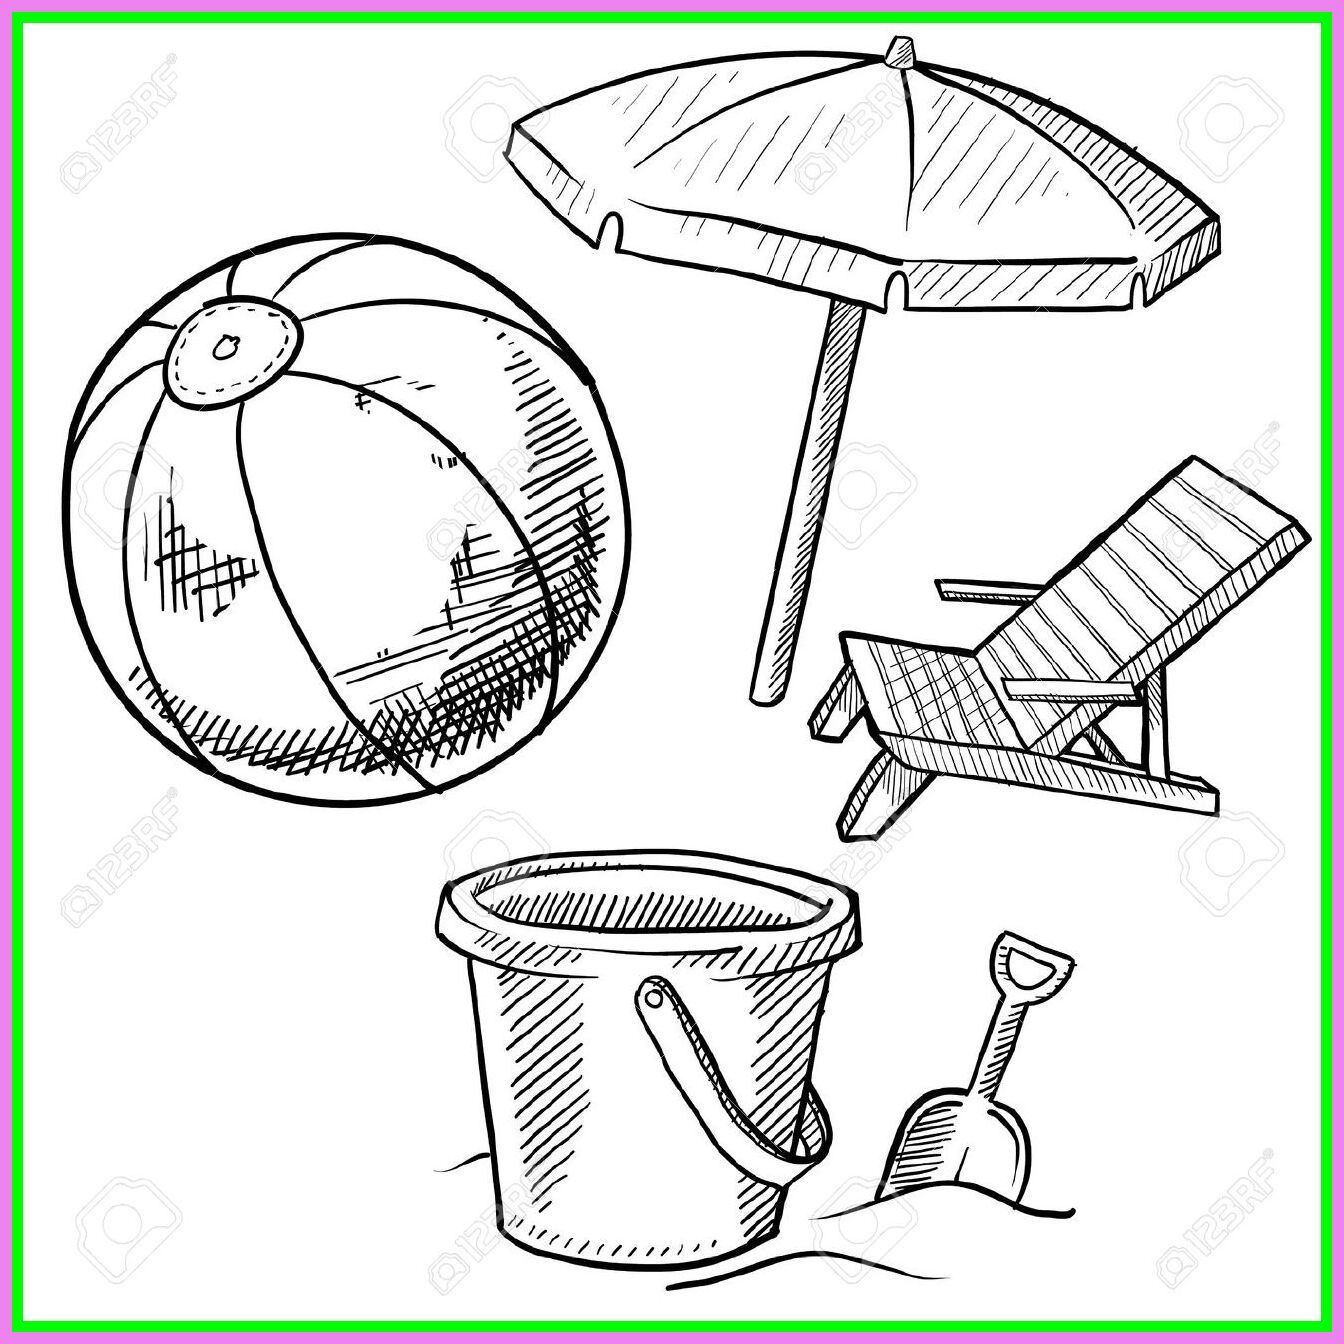 107 Reference Of Beach Chair Drawing In 2020 Chair Drawing Ball Drawing Beach Chairs